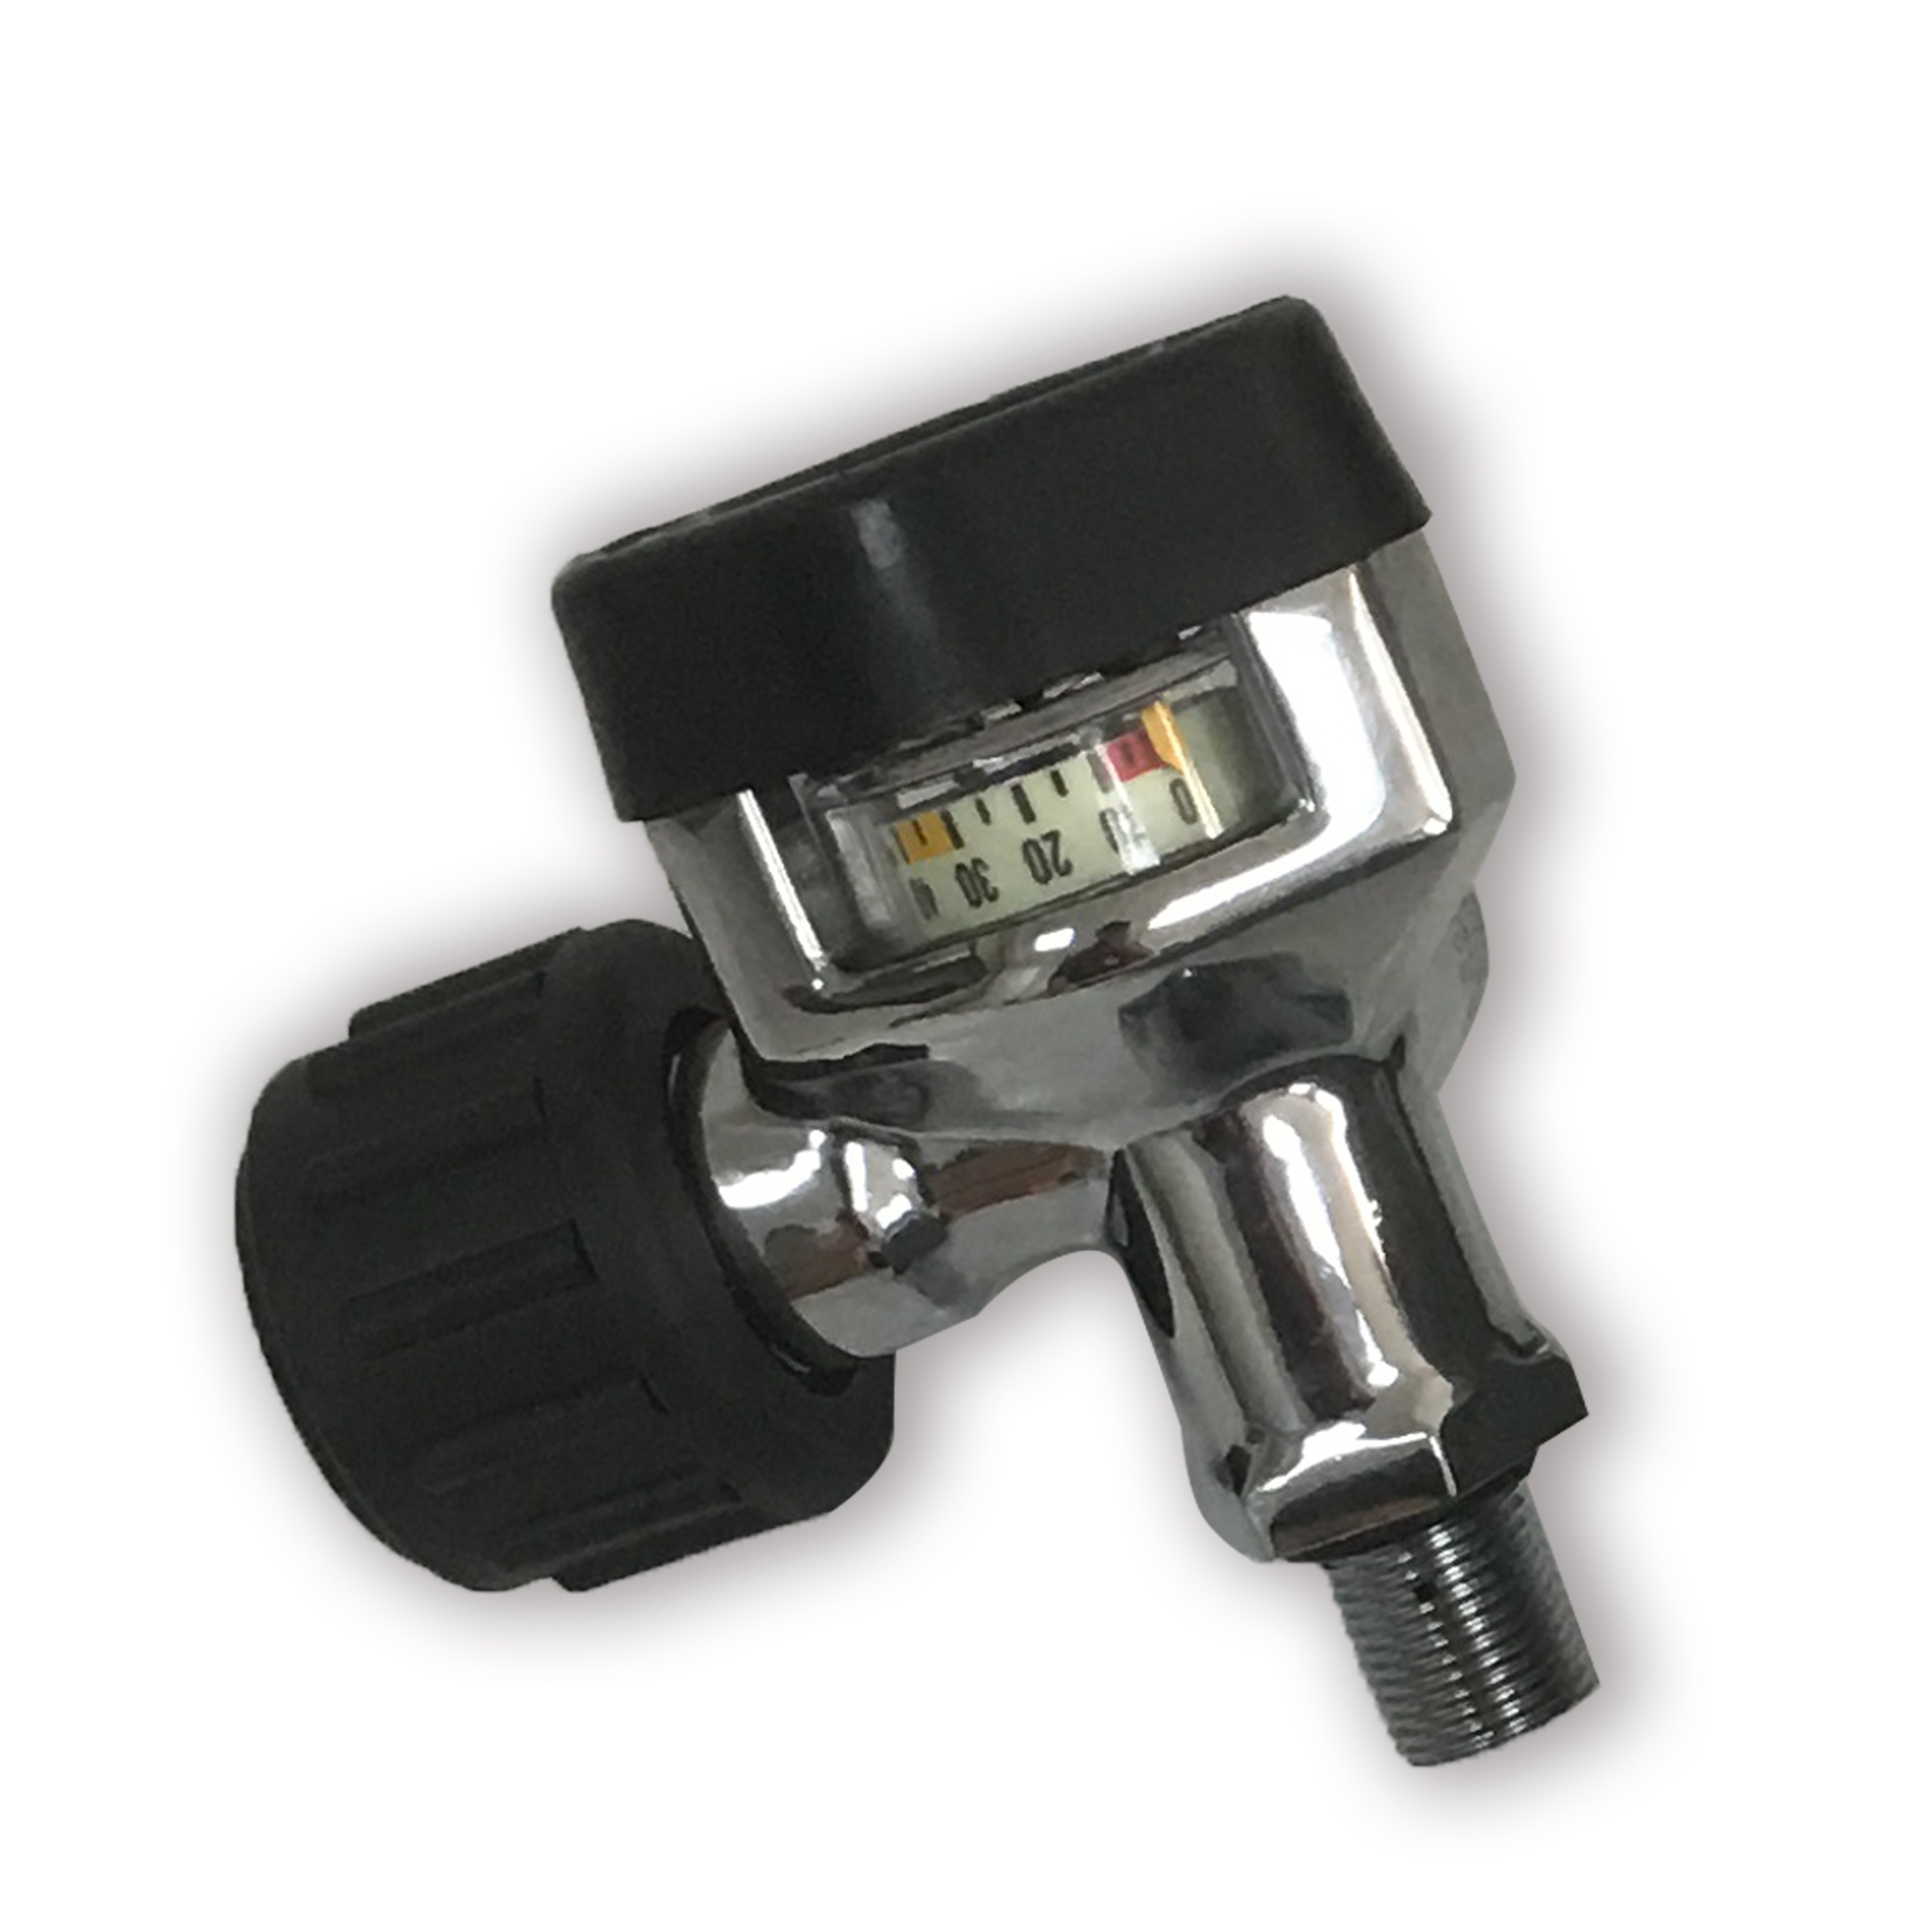 AC931 Pcp Paintball Din Valve Tank On/Off Valves M18 Male G5/8 Female 30Mpa/4500Psi For M18*1.5 High Pressure Cylinders/Cf Tank